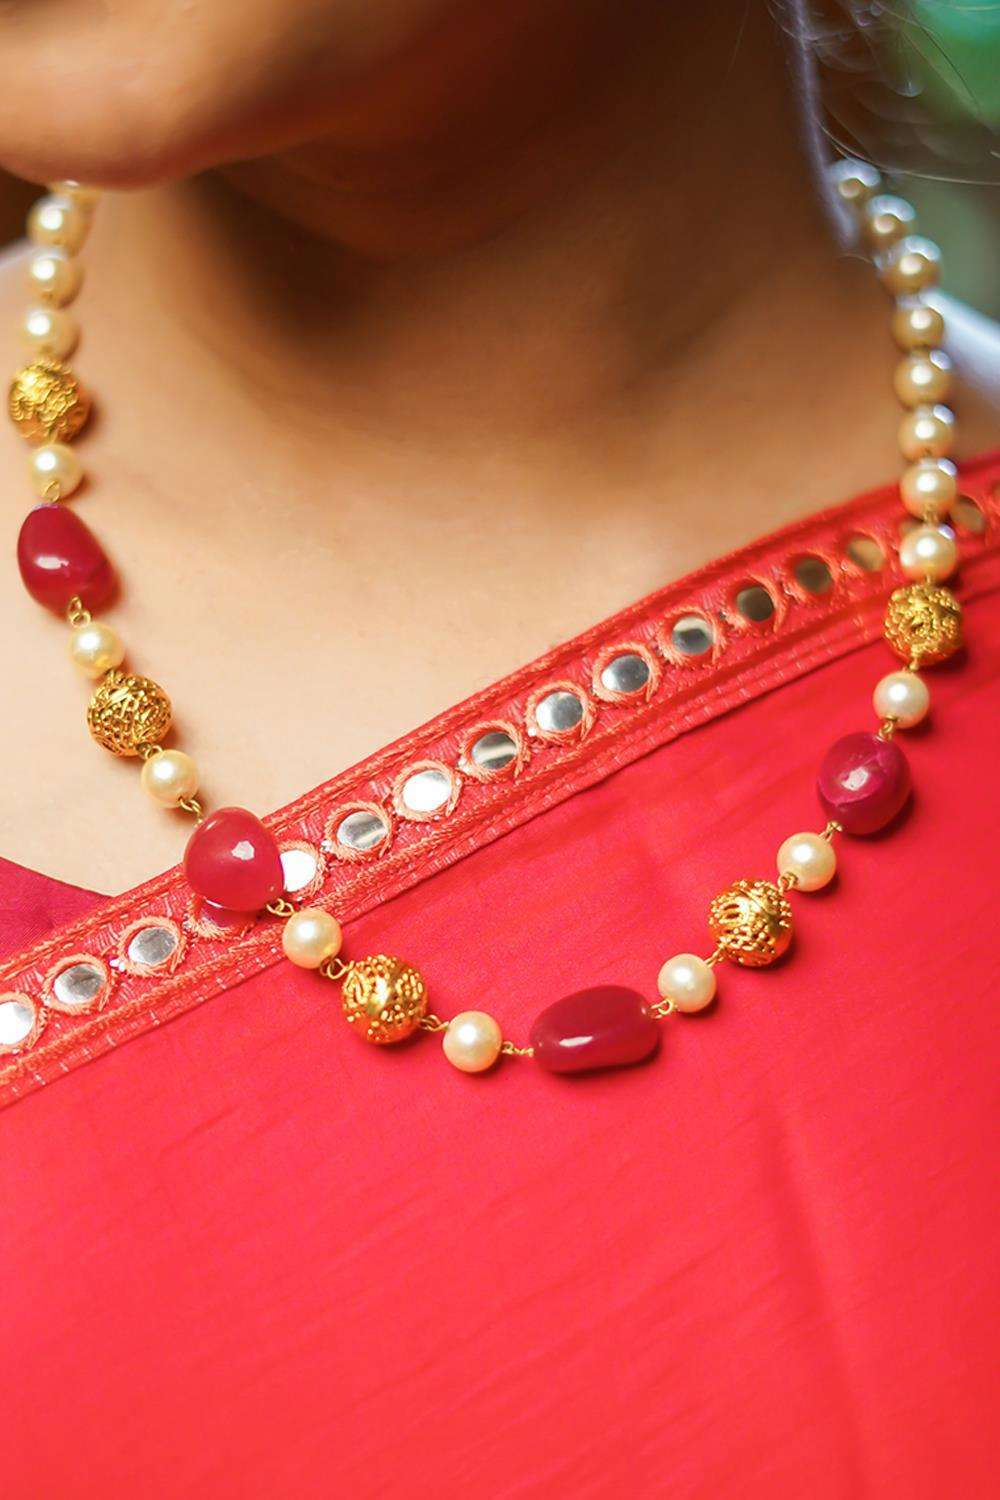 Pearls and Red stones String necklace - House of Blouse